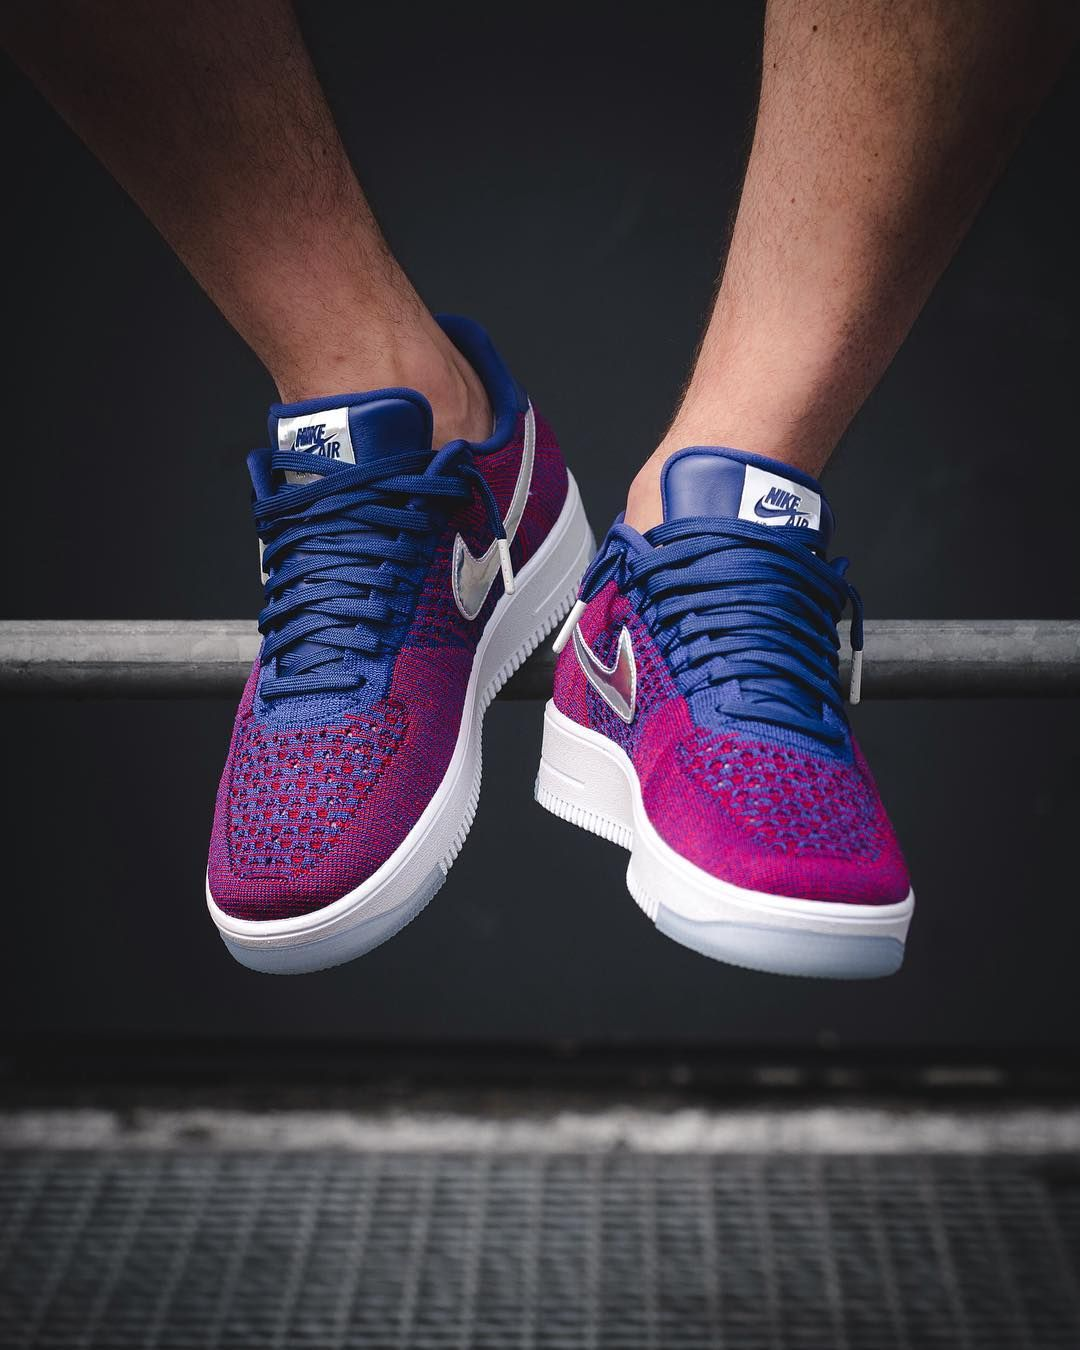 timeless design 4cbbc 1feac NIKE Air Force 1 Ultra Flyknit Low  sneakers  sneakernews